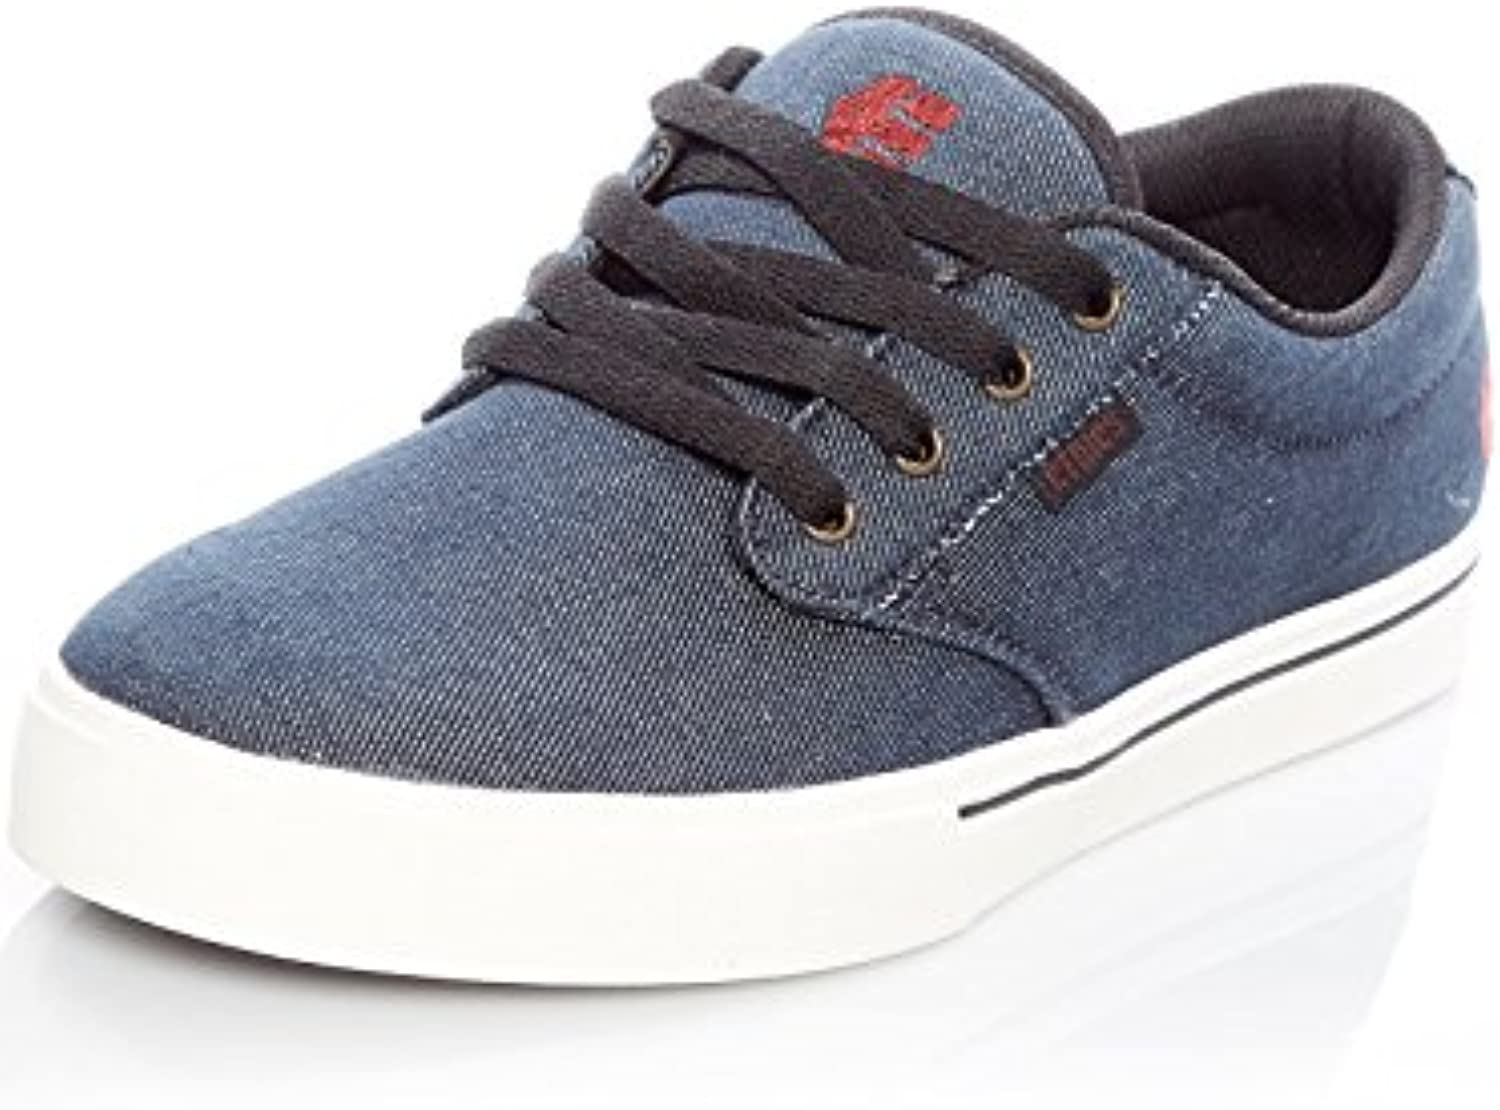 Etnies Jameson 2 Eco  Fall 2018 4101000323 077   Grey/Light Grey/Red   12